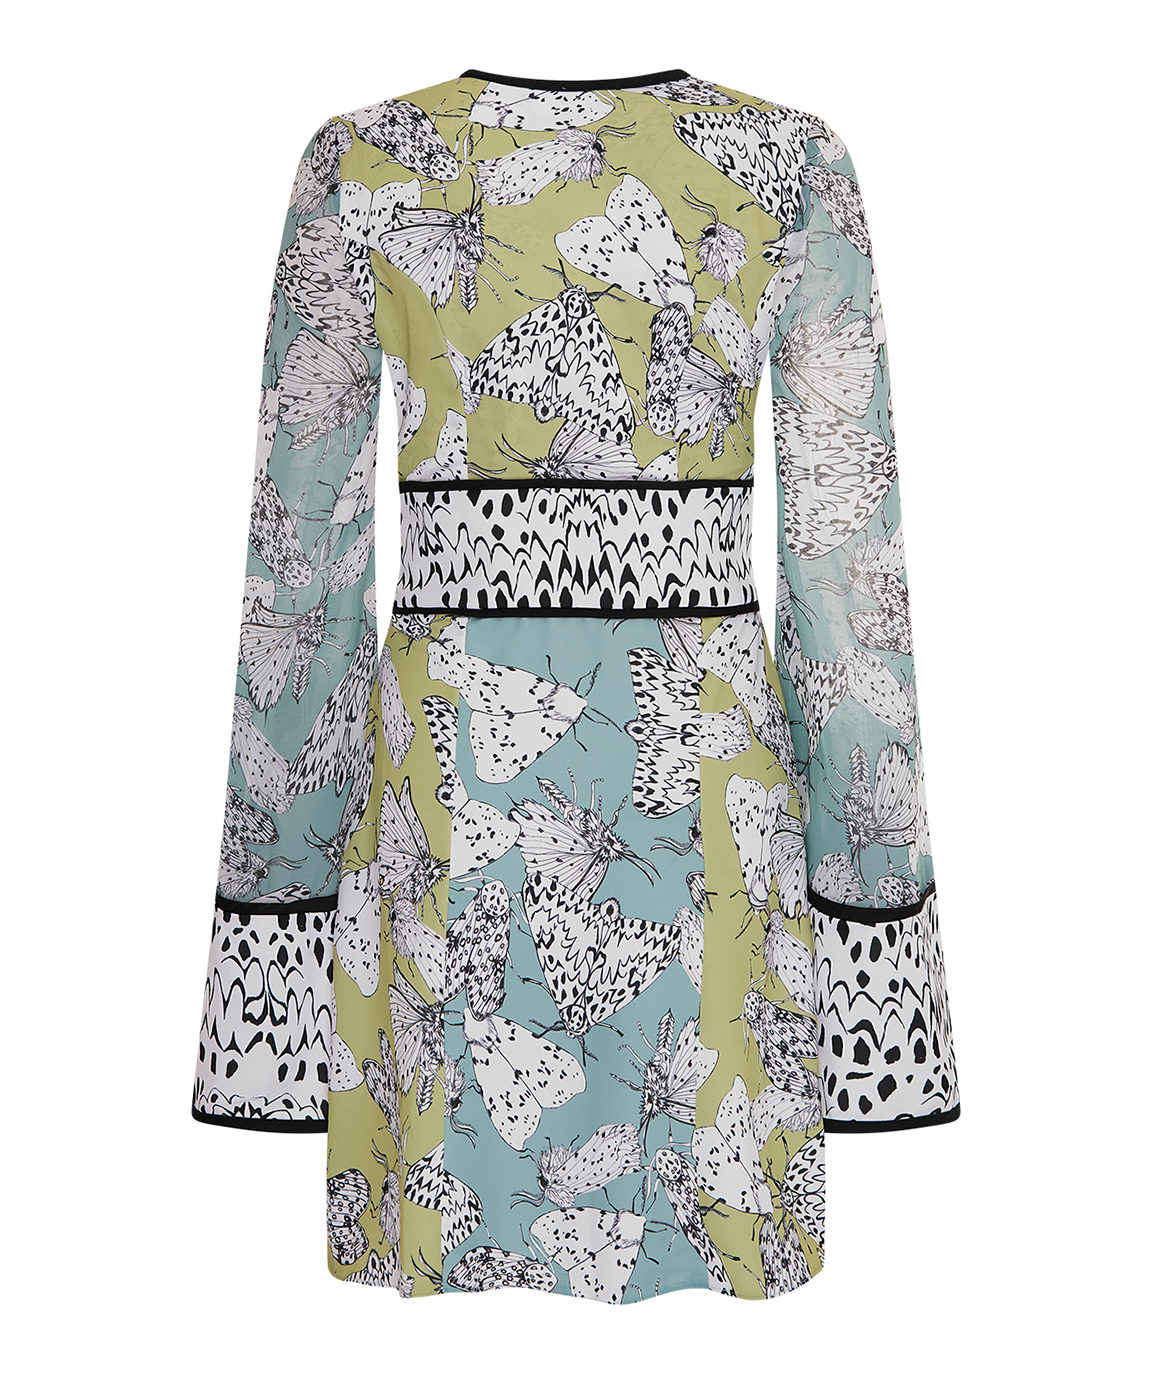 Ermine Moth Bell Sleeve Dress – Lime Green & Aqua